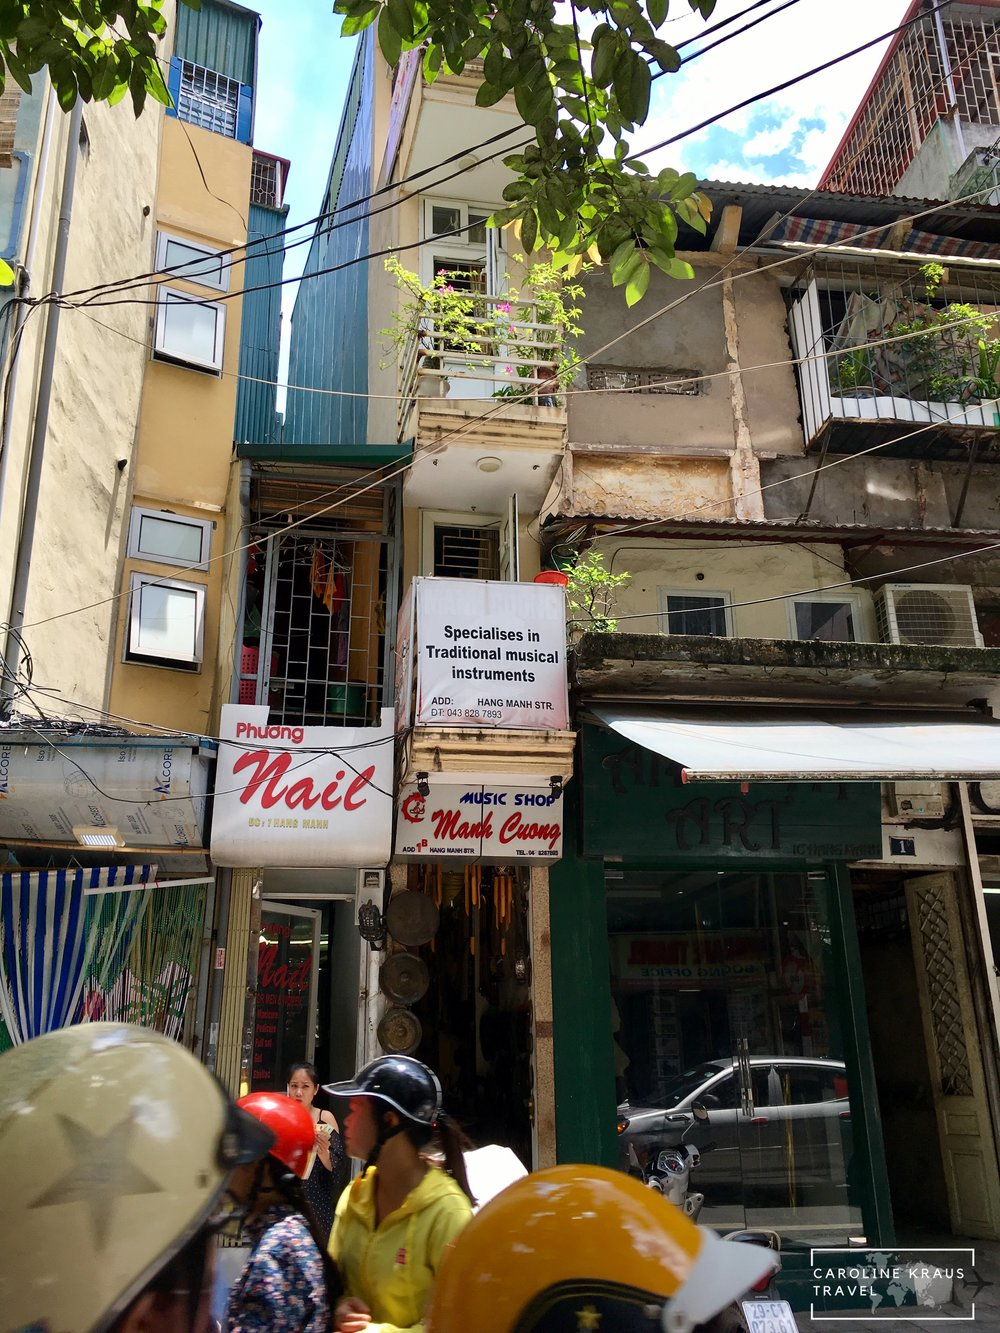 The most narrow building in Hanoi